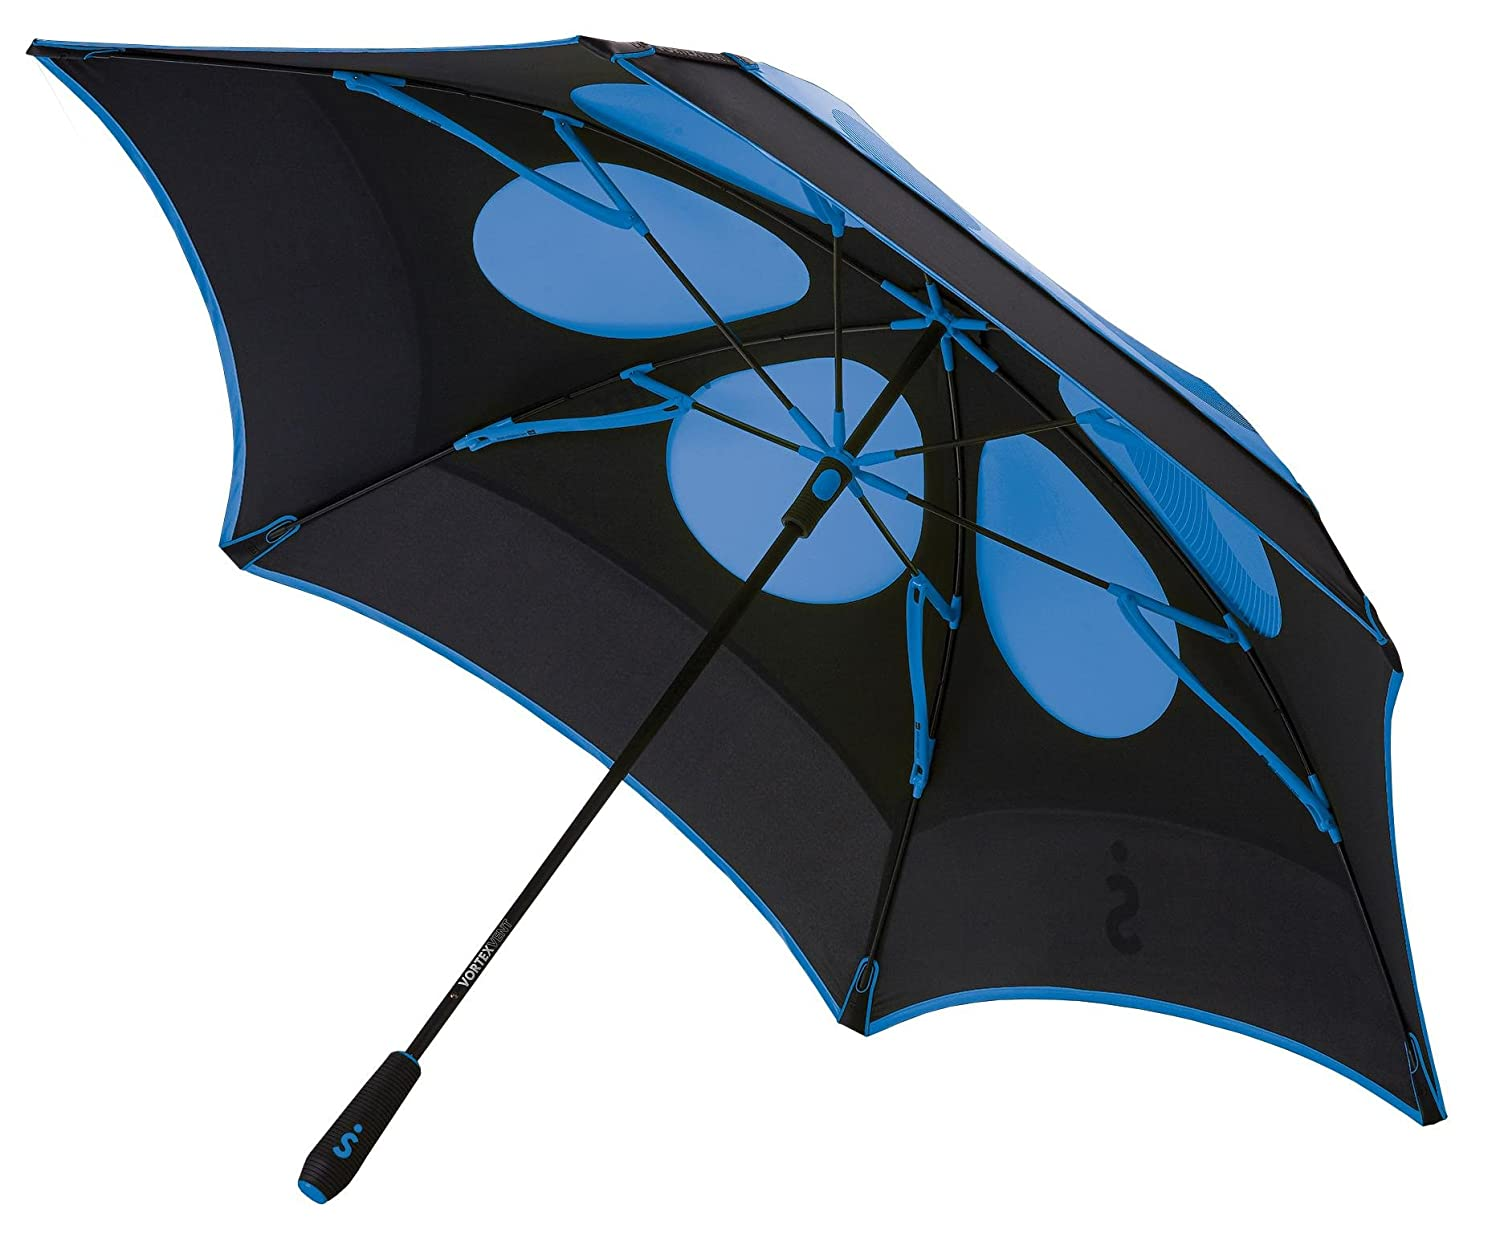 ShedRain Vortex Vent Pro Stick Umbrella